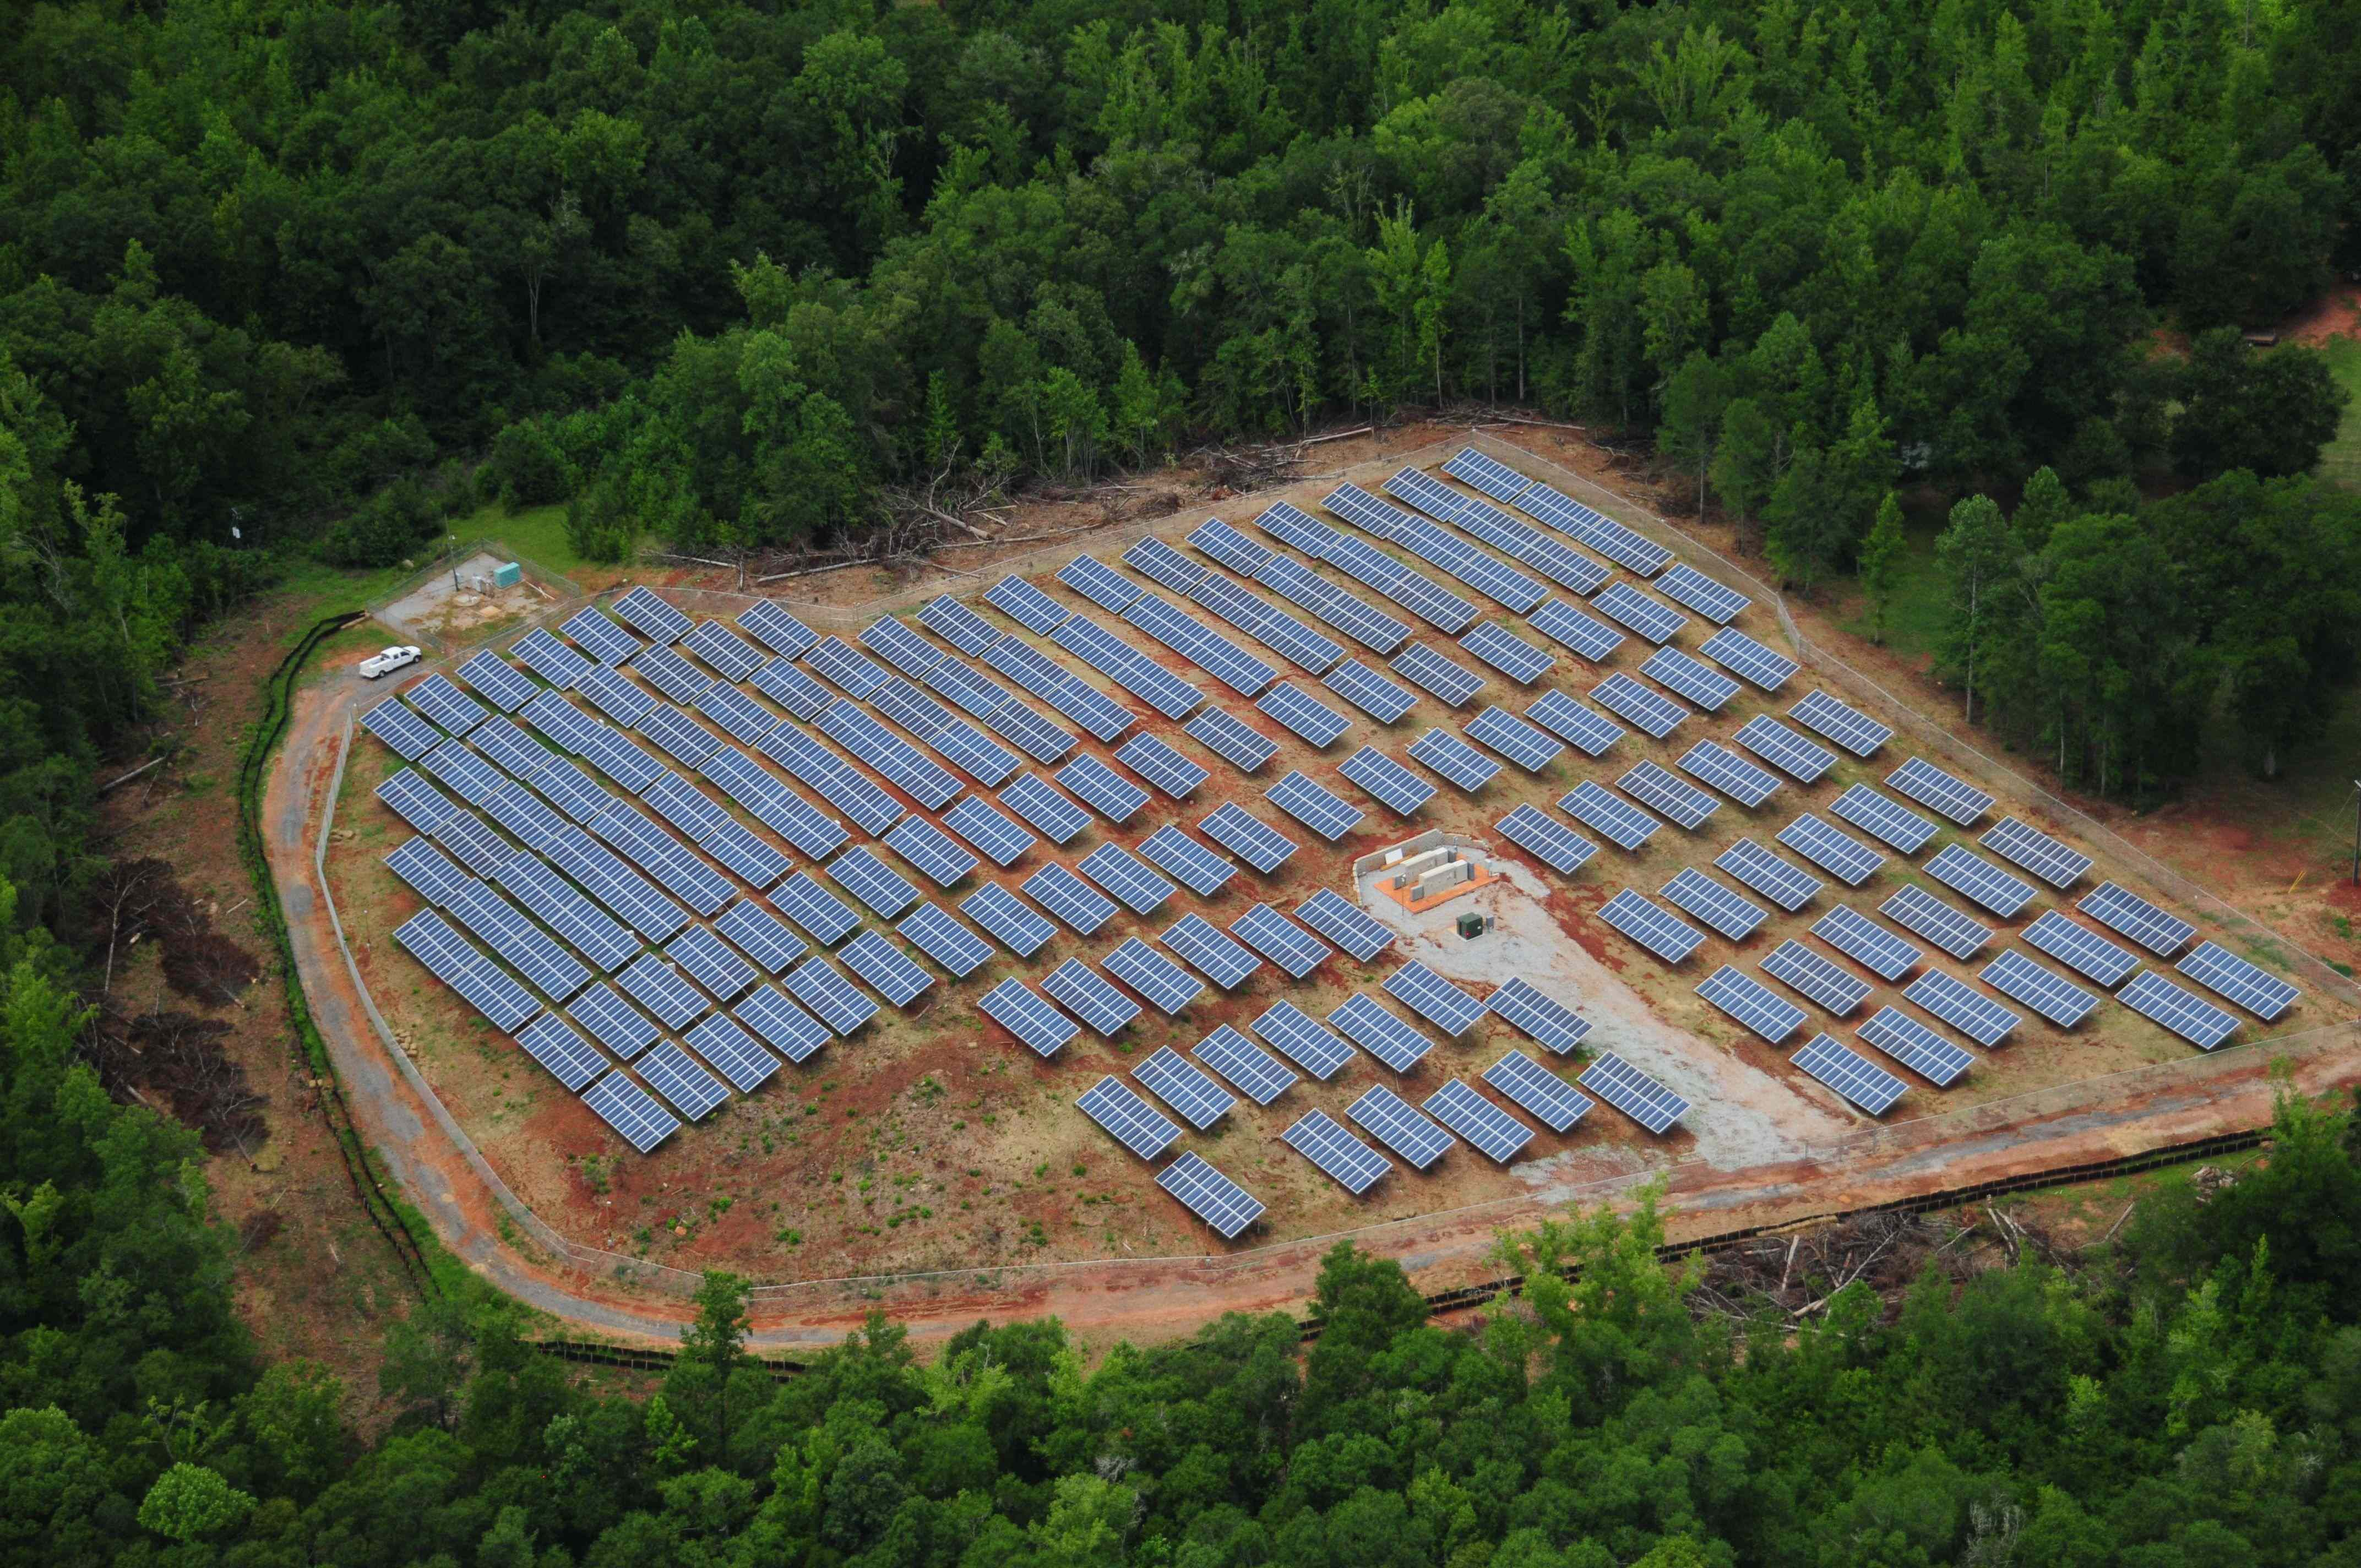 The Rocky Creek Solar Farm, built by Radiance Solar and Cantsink Manufacturing, became operational on June 14 and is now providing enough power to supply the electrical needs of approximately 300 homes.